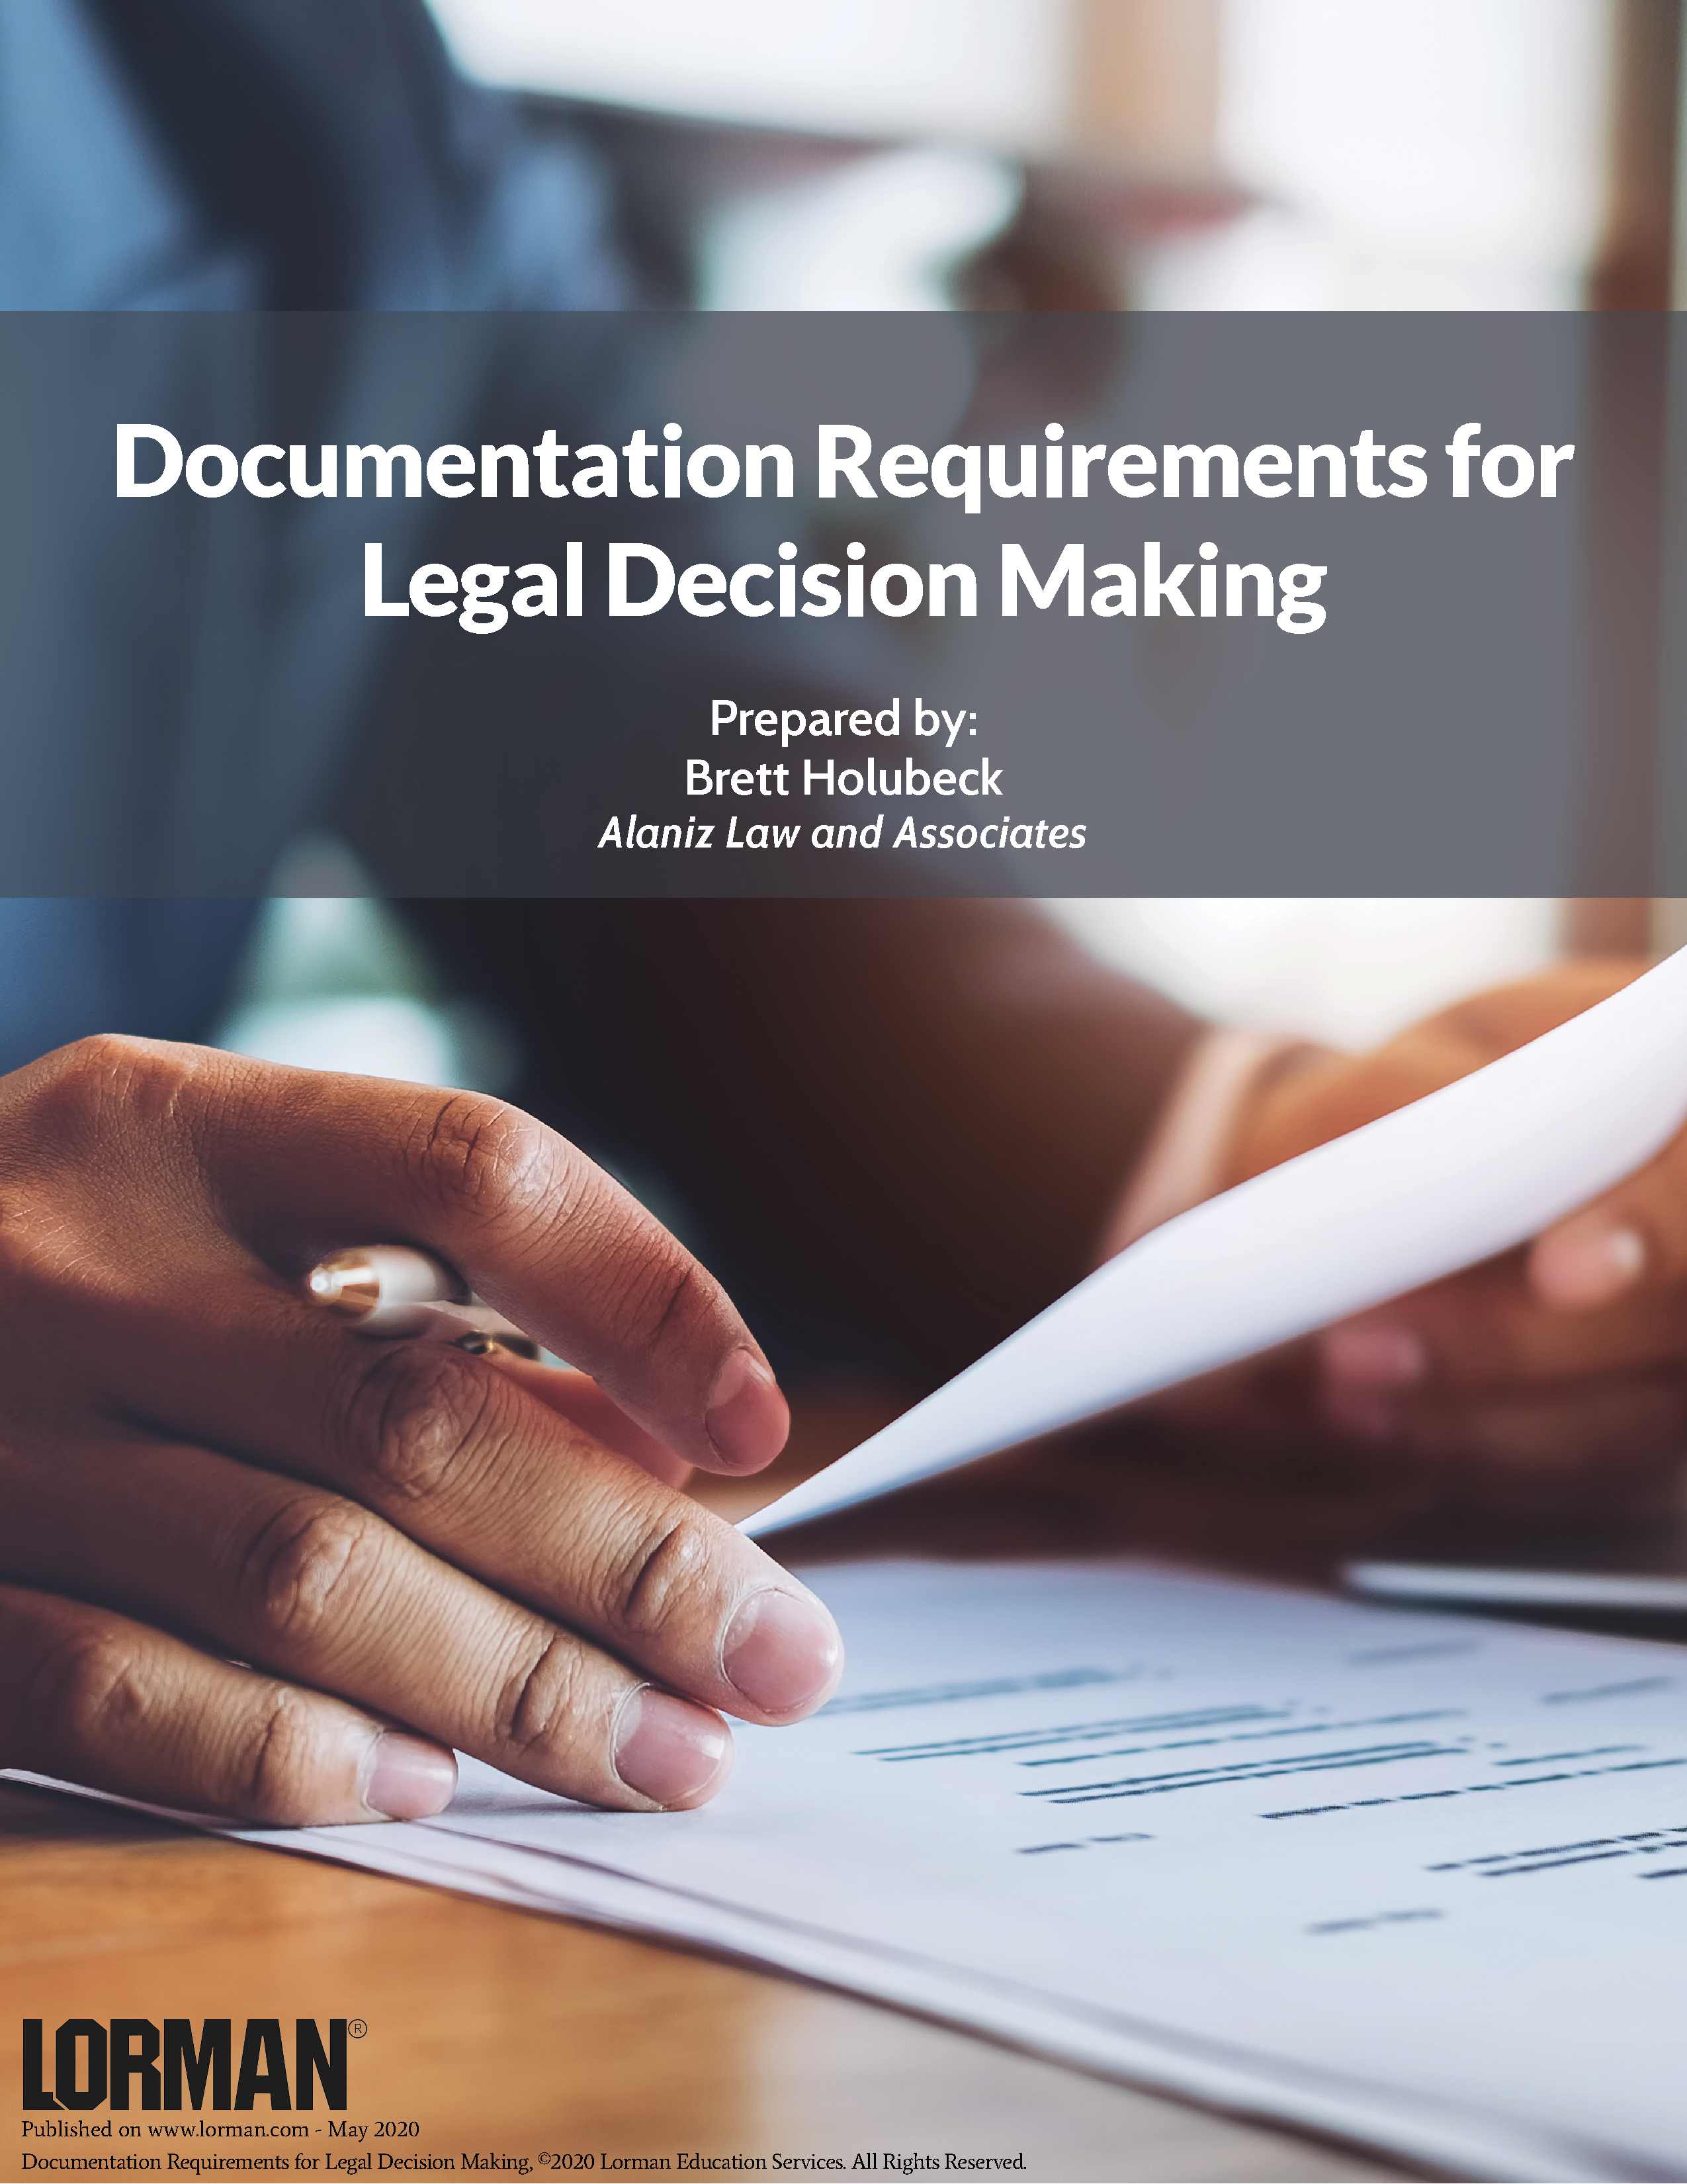 Documentation Requirements for Legal Decision Making